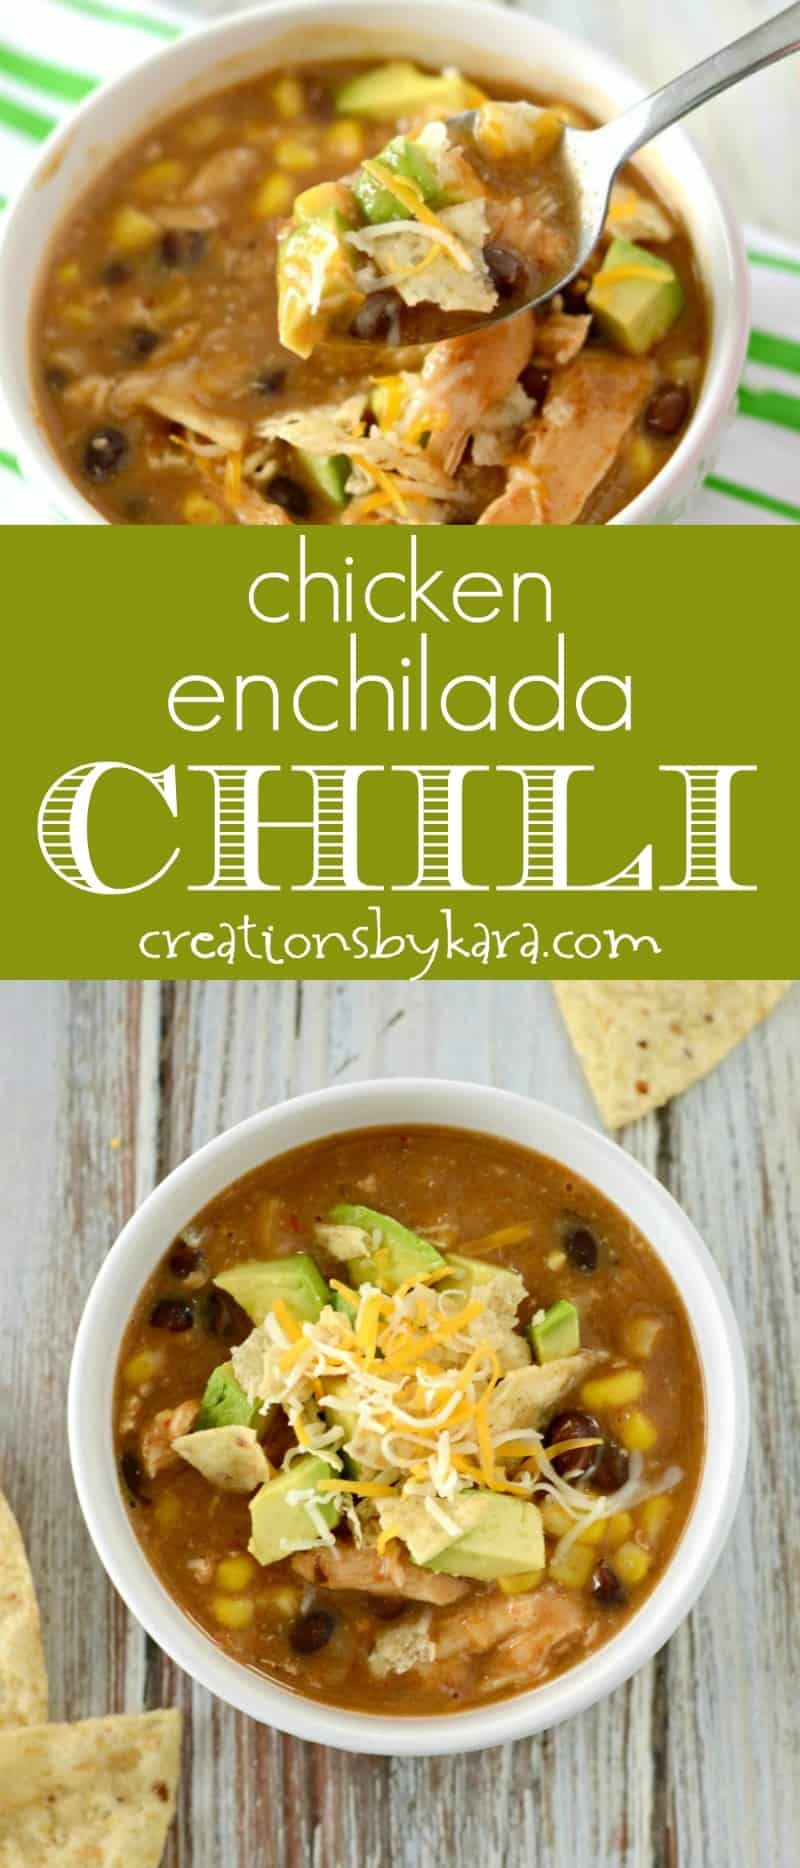 Easy Chicken Enchilada Chili - this easy chicken chili recipe is sure to become a family favorite. It only takes a few minutes of prep time, and it is packed with flavor! #chili #chickenchili #easychili